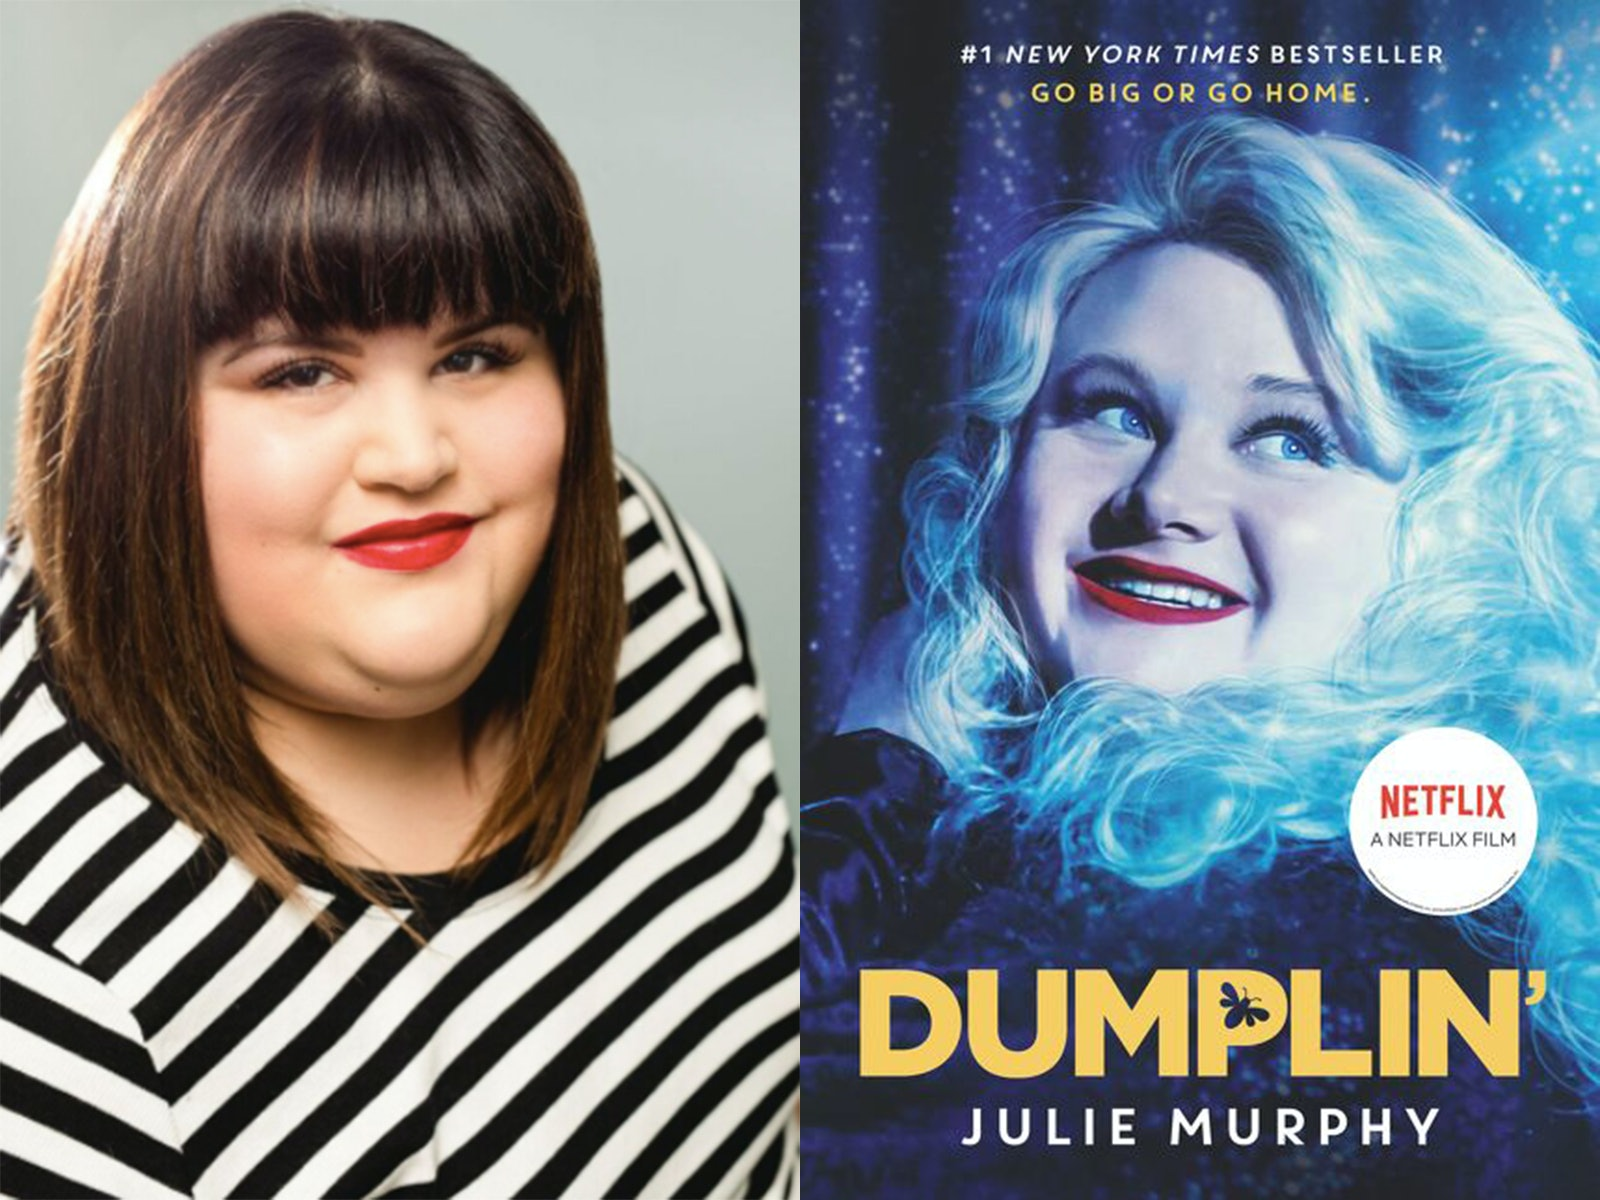 'Dumplin' Author Julie Murphy Thinks The Revolution Is Going To Start With  Young People. '